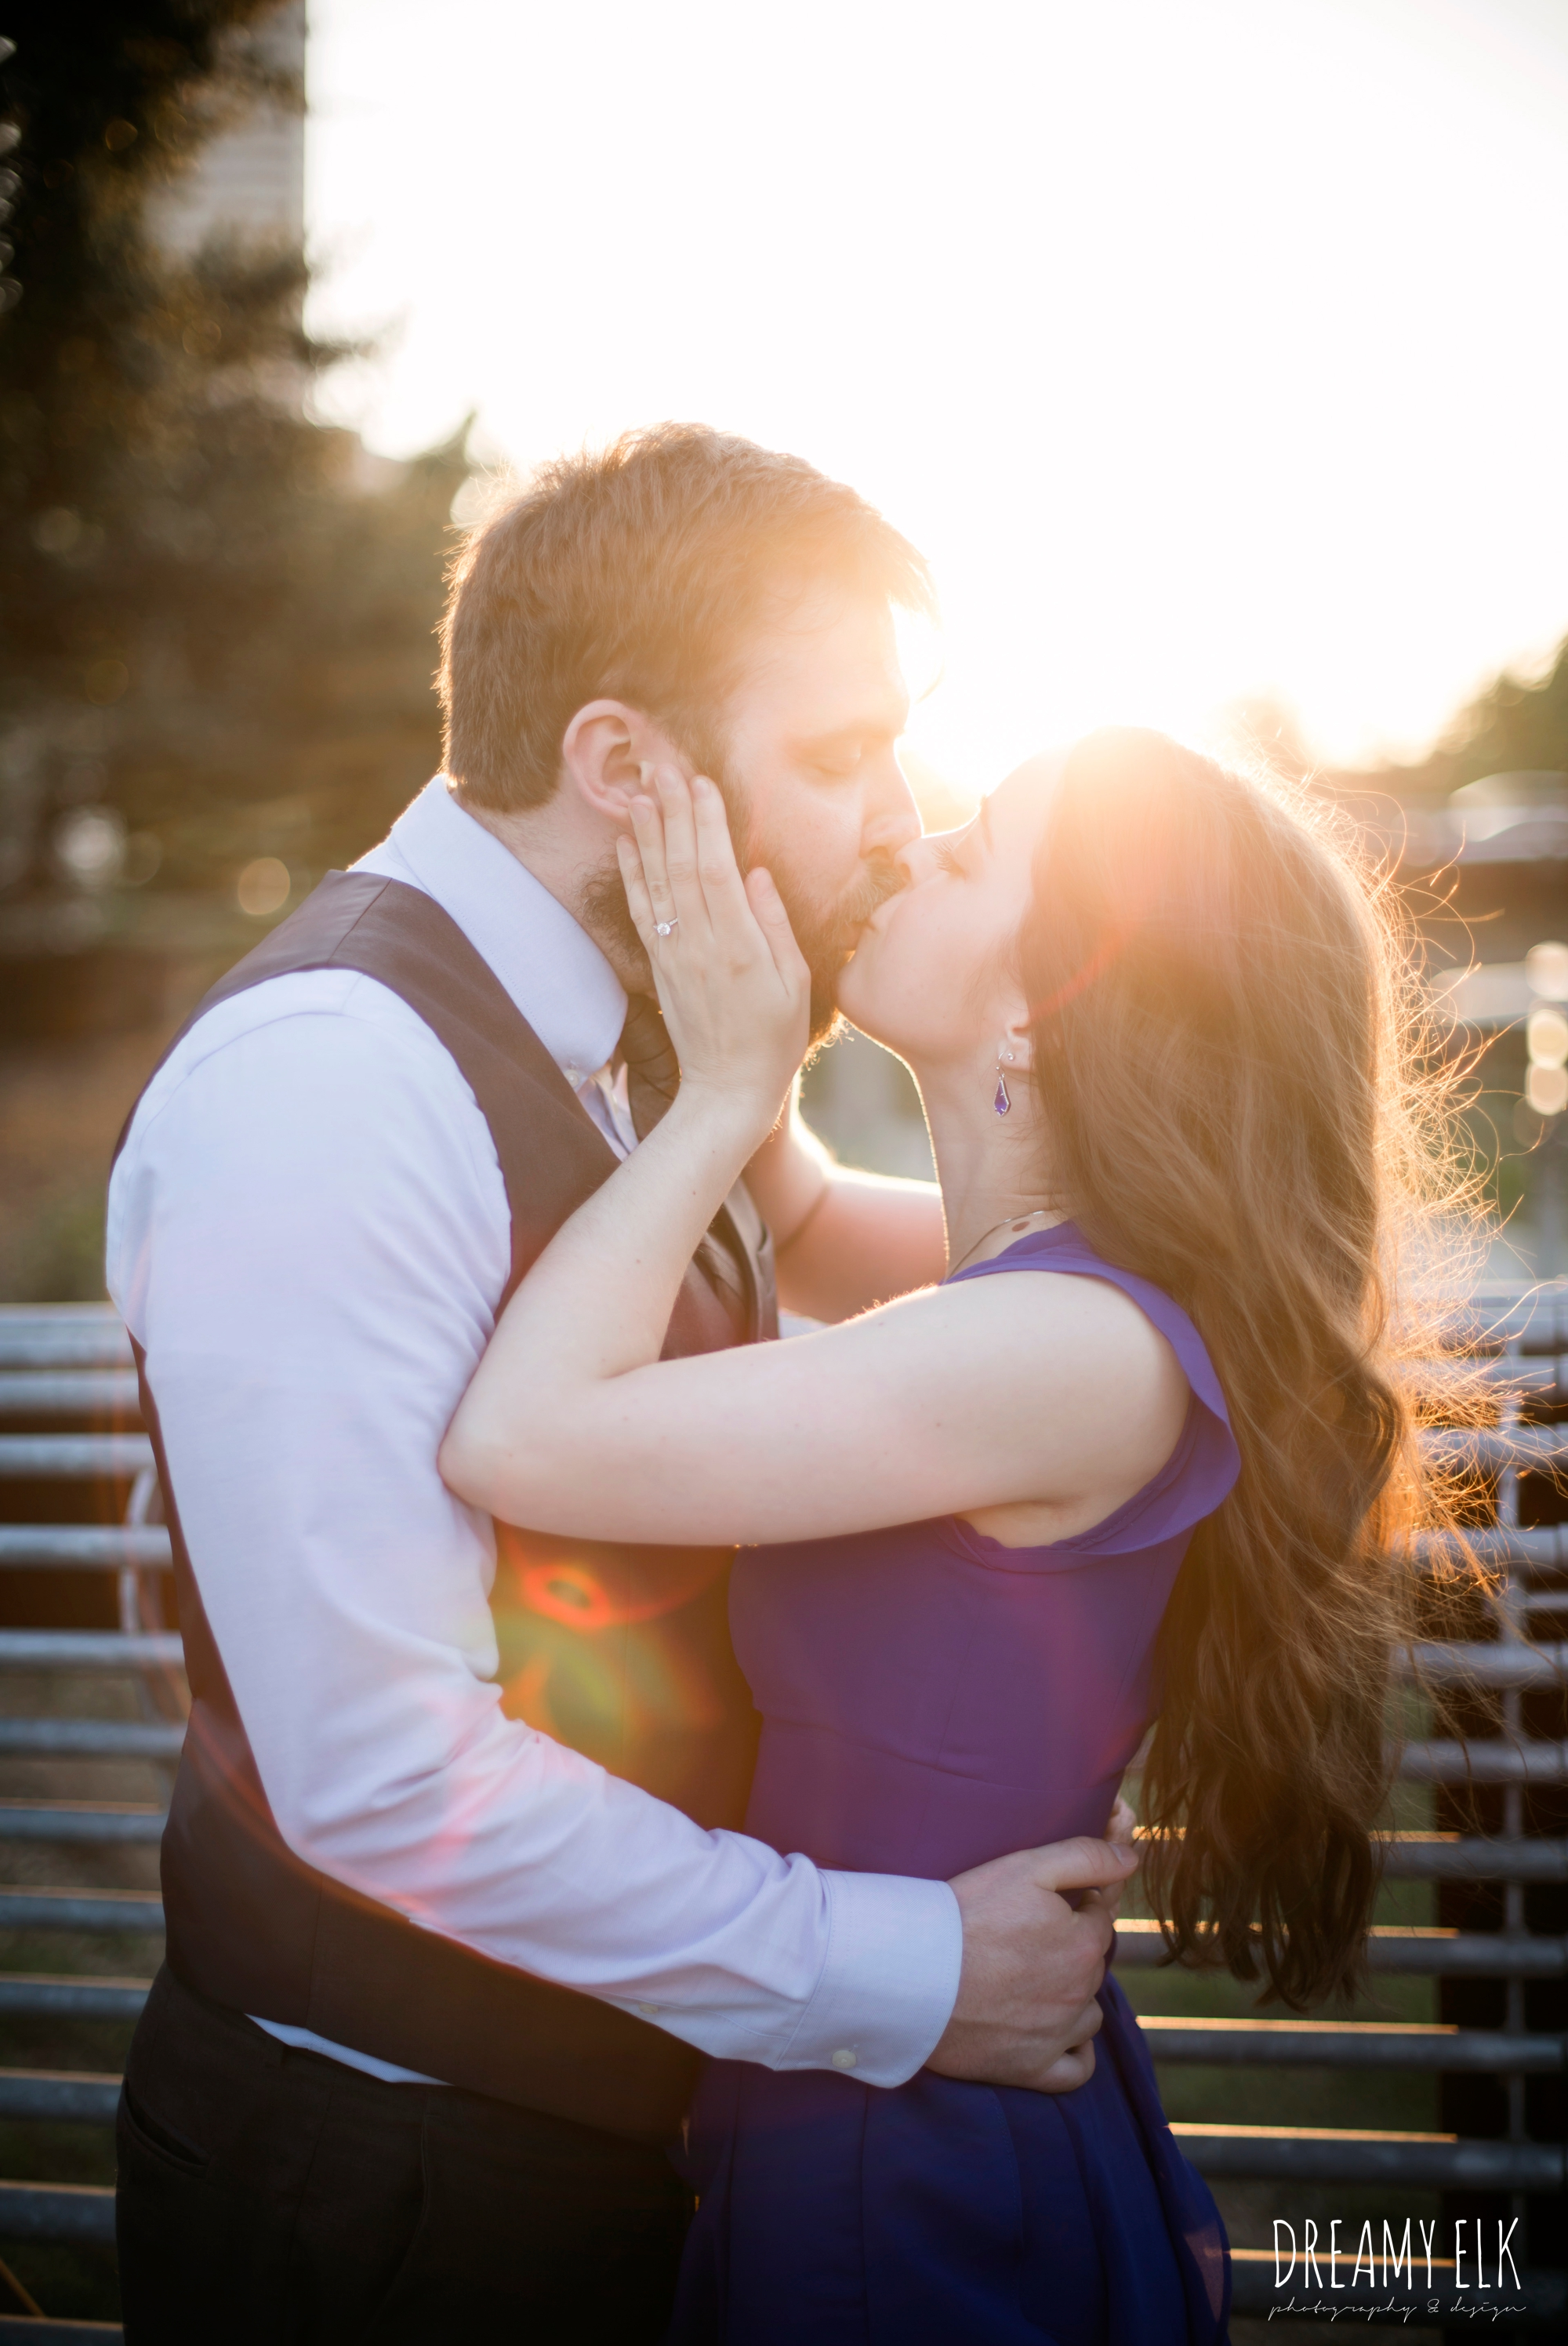 spring, march, formal engagement photo, allen parkway, houston, texas {dreamy elk photography and design}